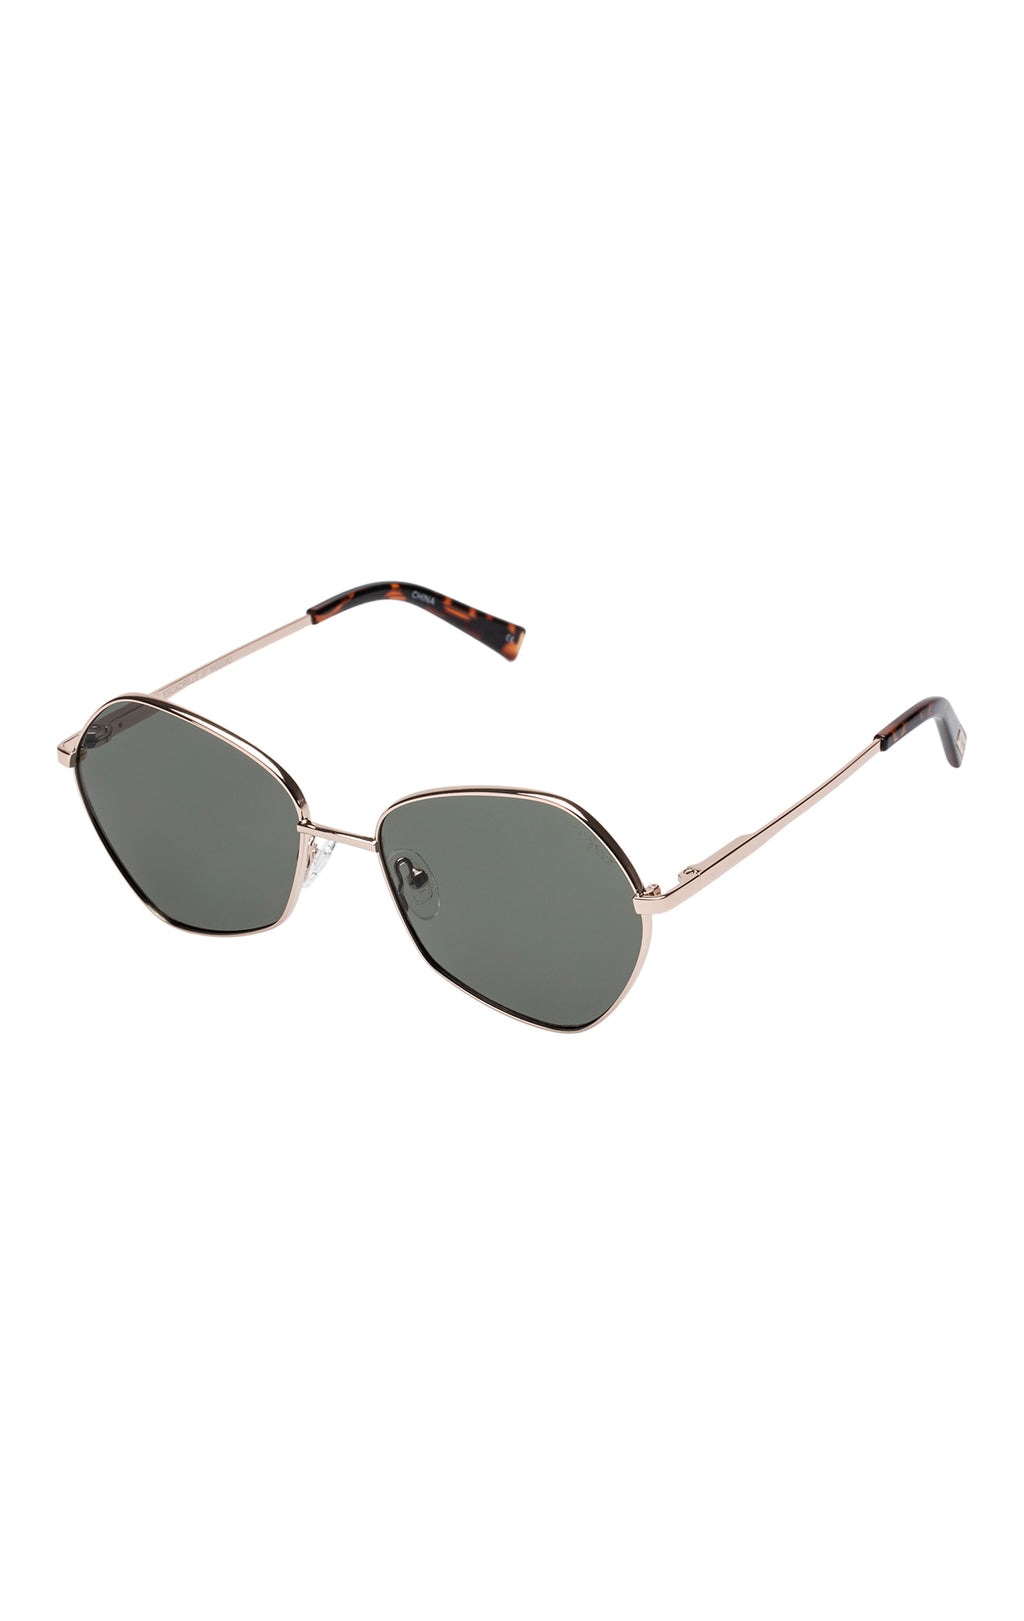 ESCADRILLE OCTAGON SUNGLASSES